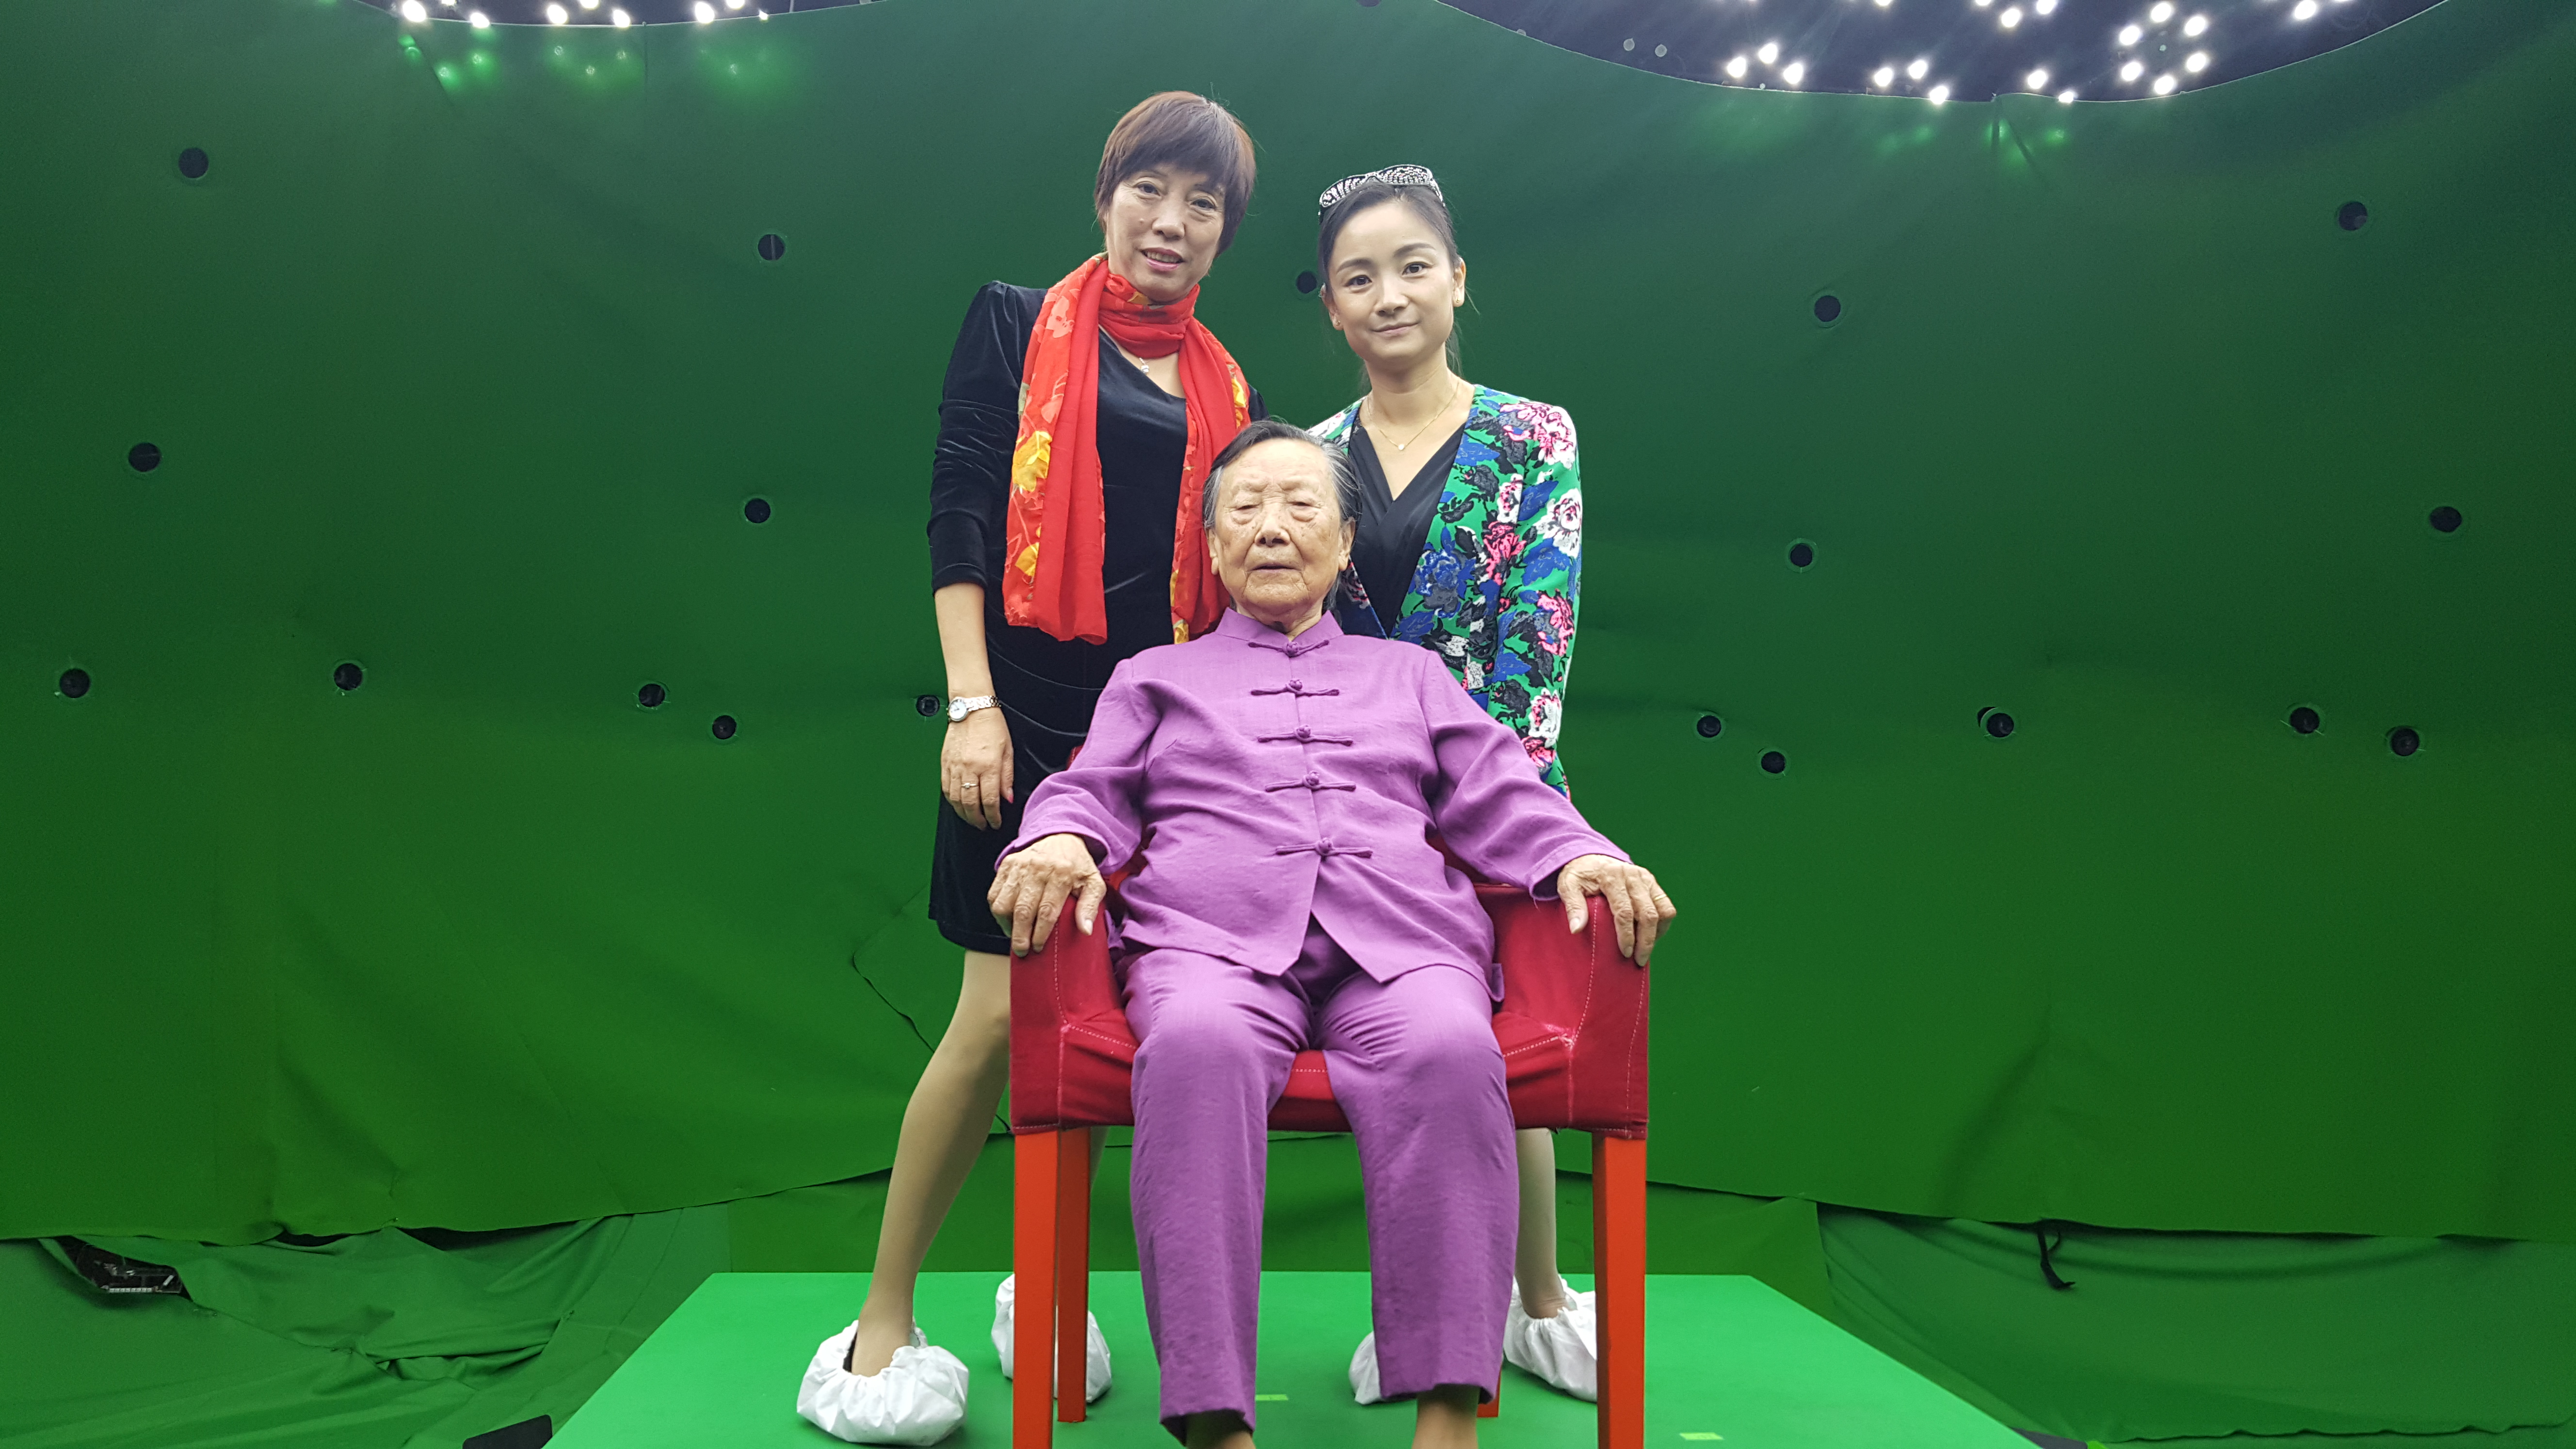 Madame Xia (seated) with family